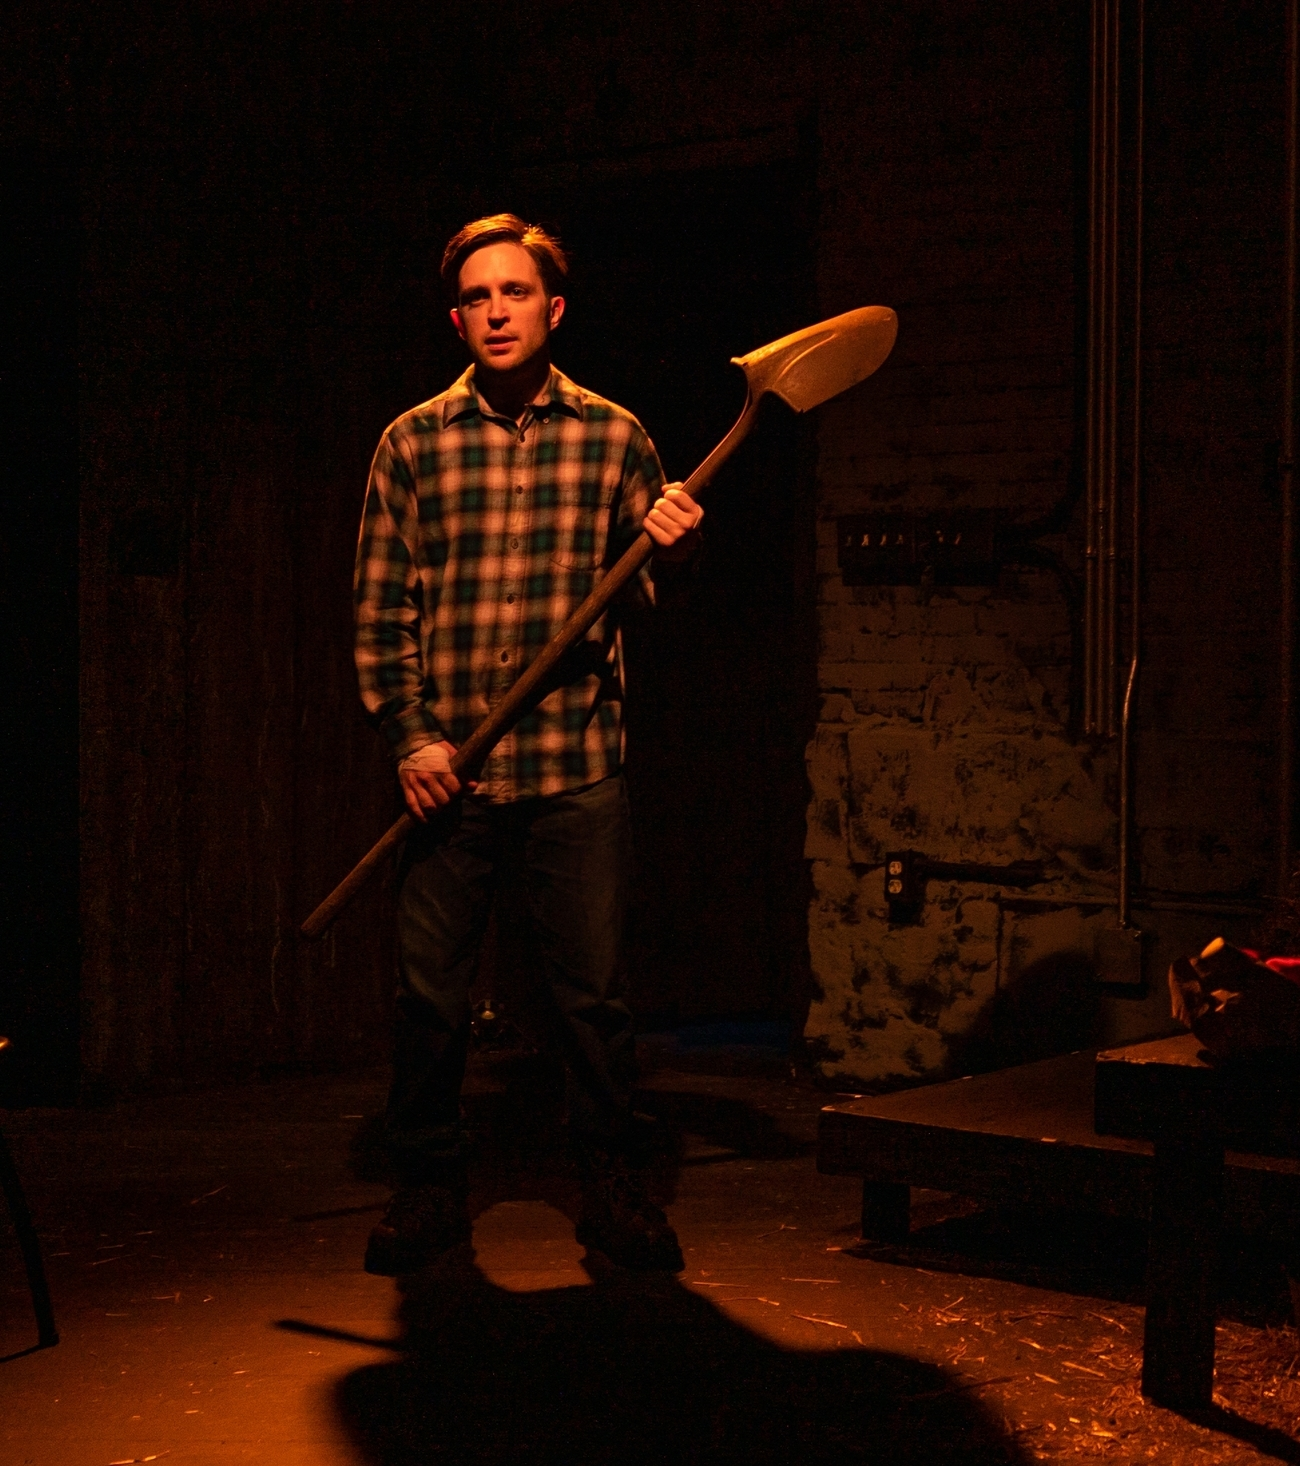 BWW Review: TOM AT THE FARM Fulfills Convergence Continuum's Language, Structure, Space and Performance Mission